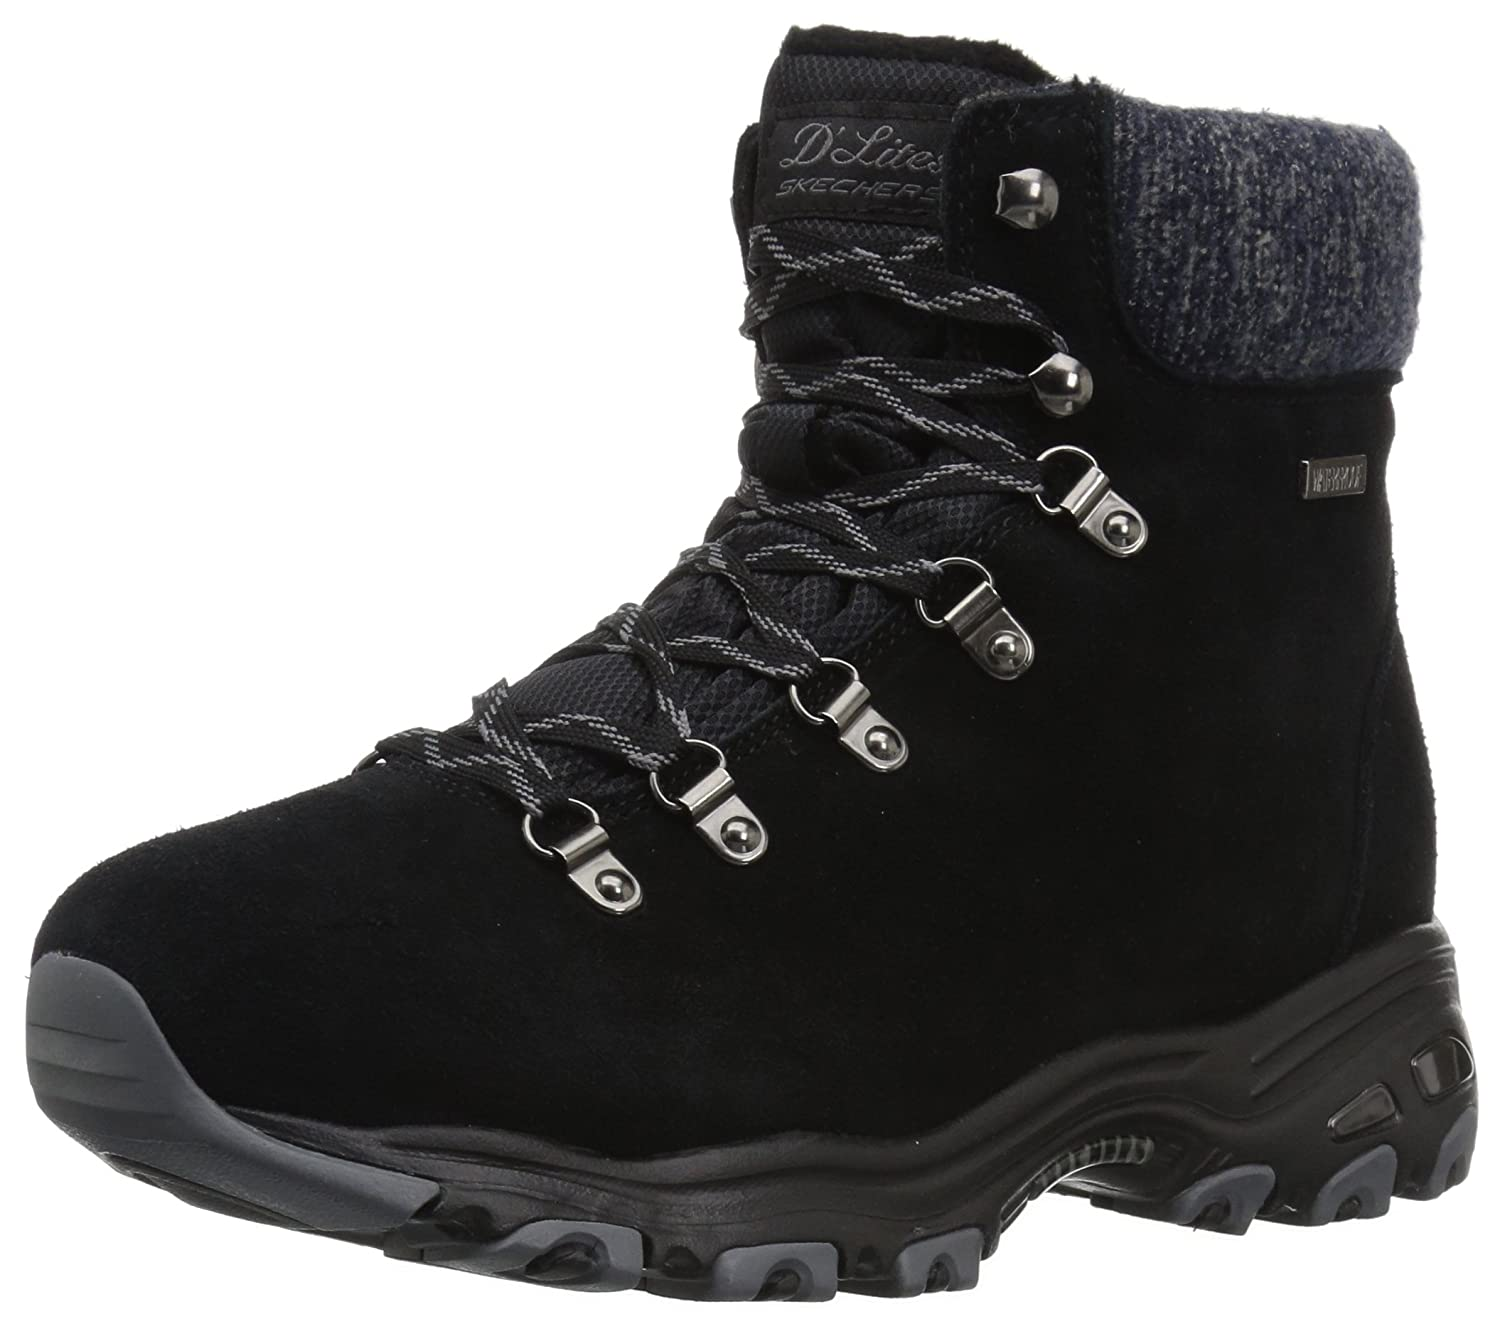 Skechers Women's D'Lites-Short Lace up Winter Boot B01MYENHY0 10 B(M) US|Black